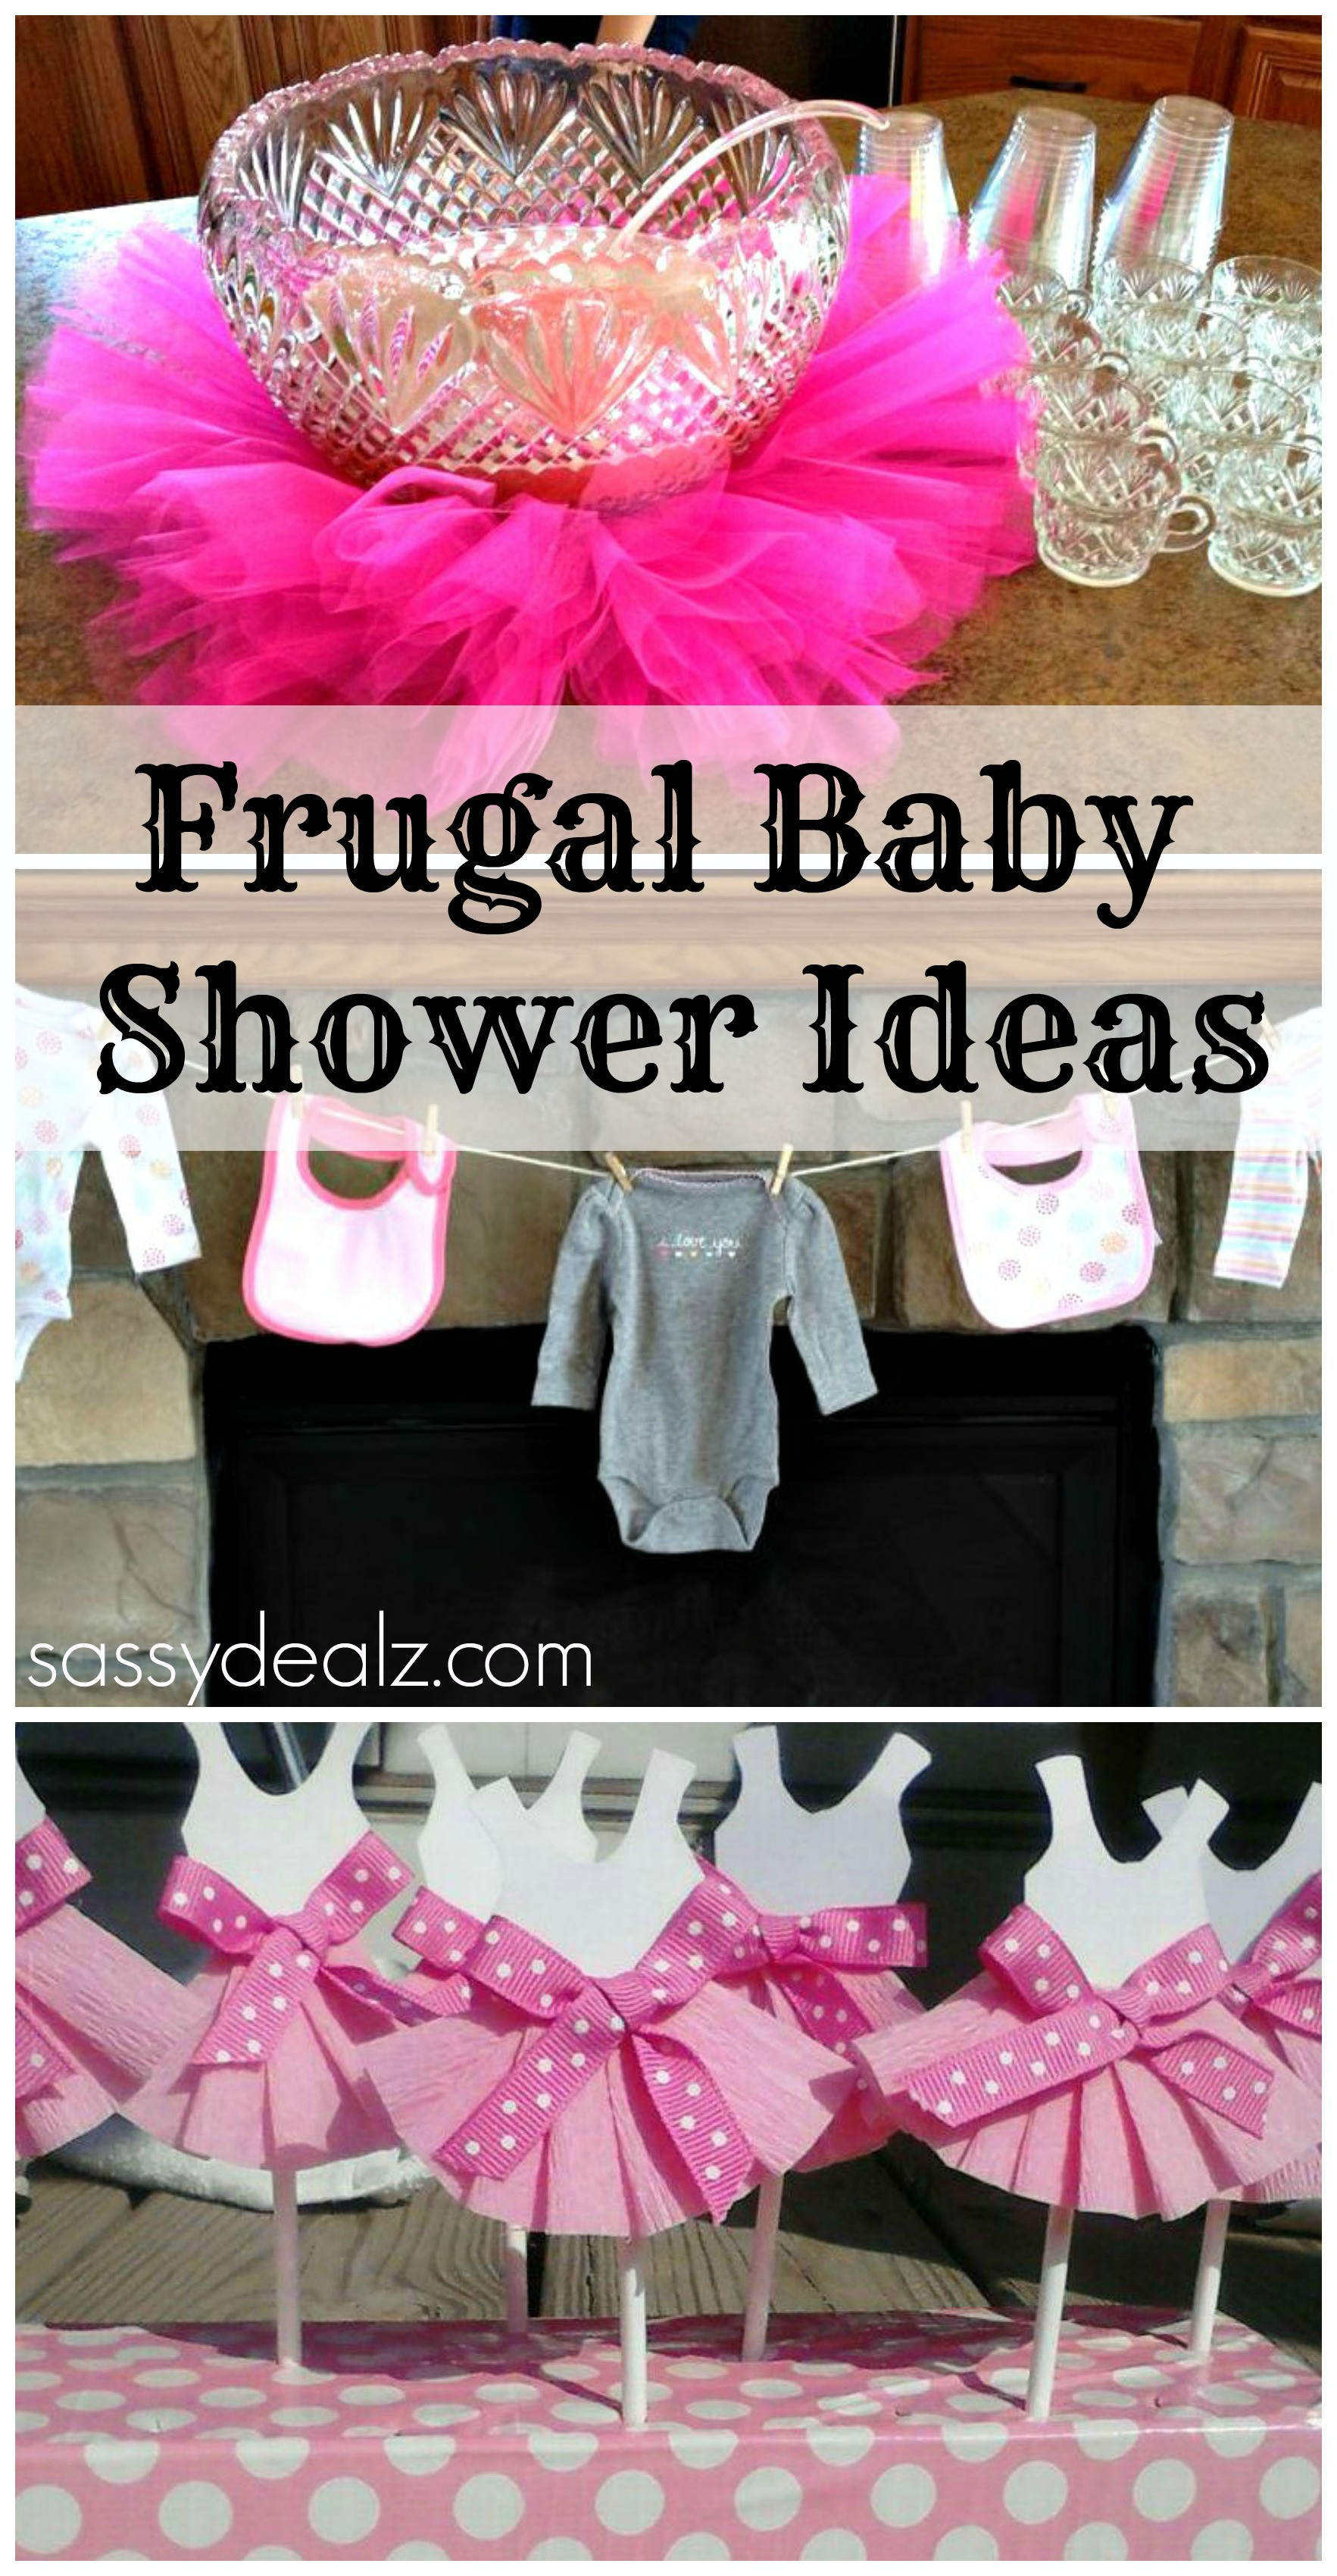 Best ideas about DIY Baby Shower Ideas On A Budget . Save or Pin Baby Girl Shower Ideas on a Bud Crafty Morning Now.